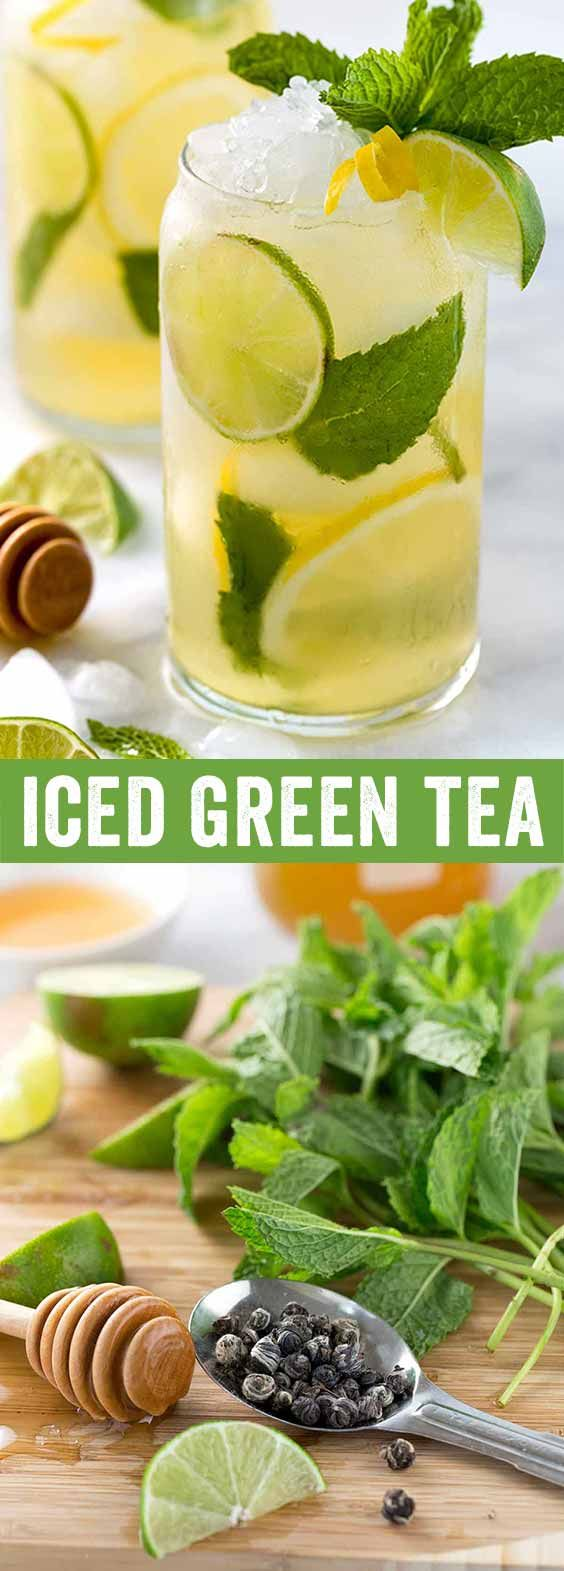 Iced green tea with lemon, lime, and fresh mint is a refreshing and revitalizing beverage for those warm days. Each glass is naturally sweetened with honey and packed with antioxidants. via @foodiegavin